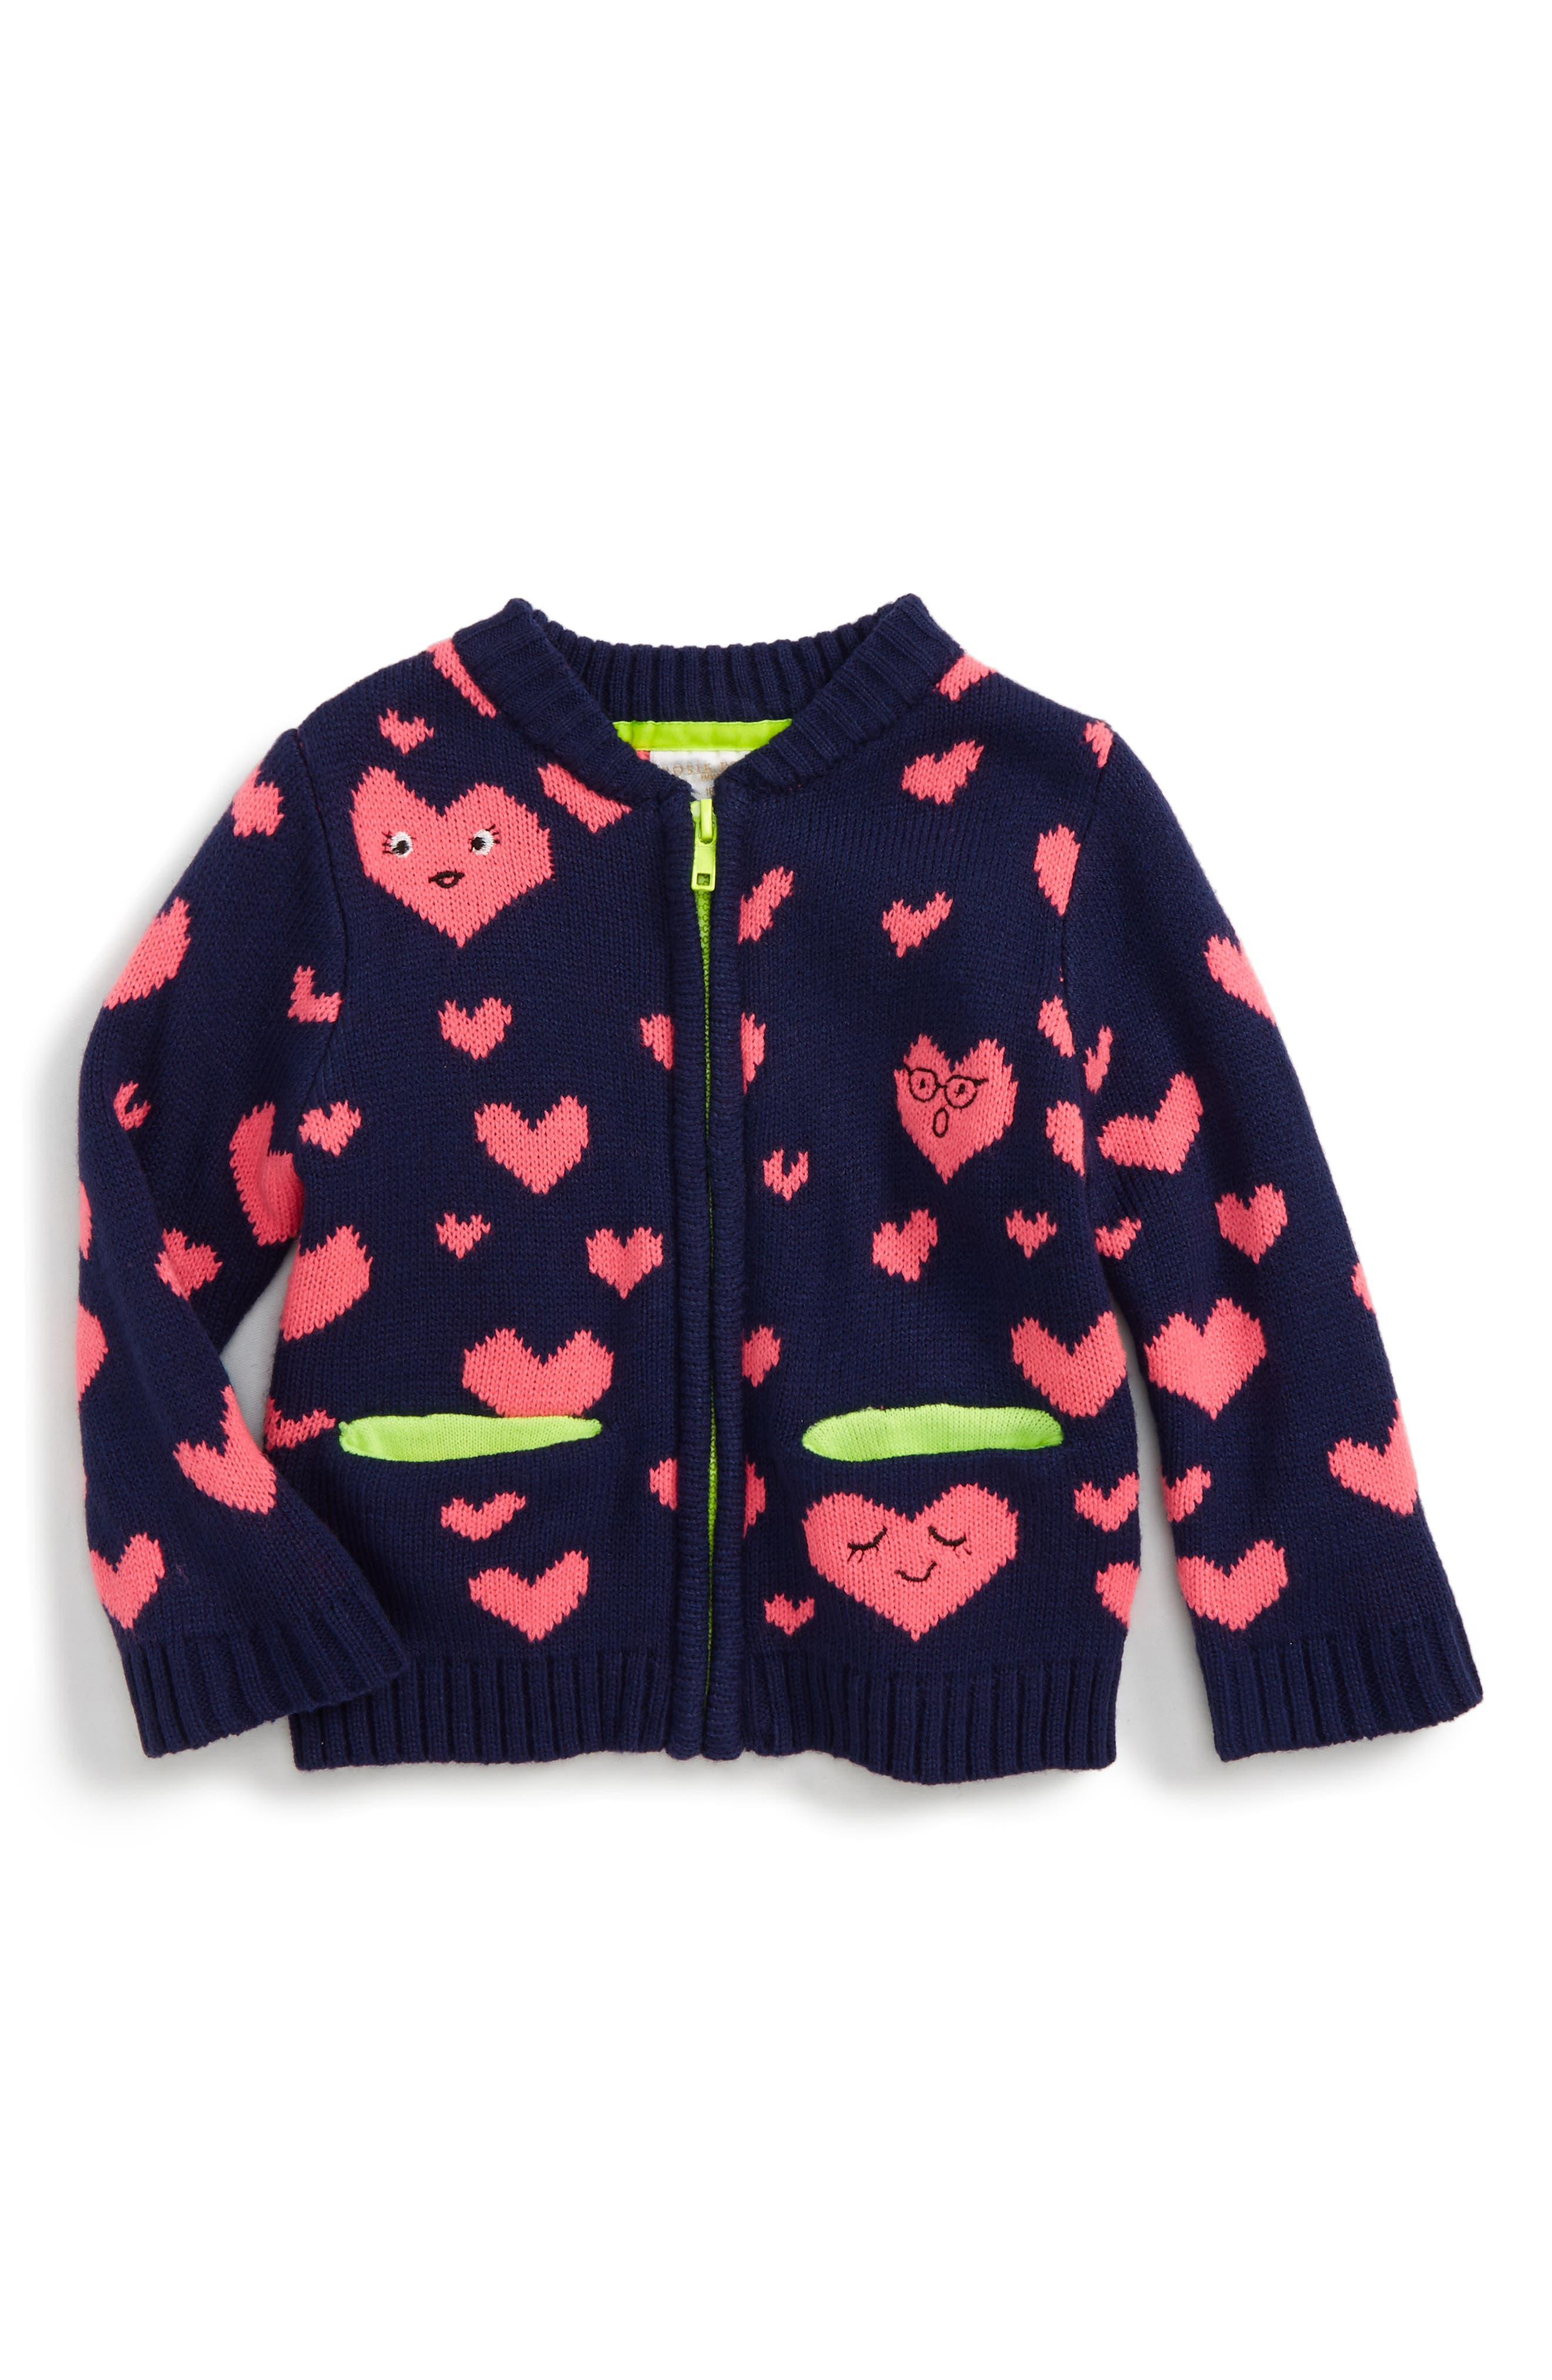 Alternate Image 1 Selected - Rosie Pope Heart Zip Up Cardigan (Baby Girls)